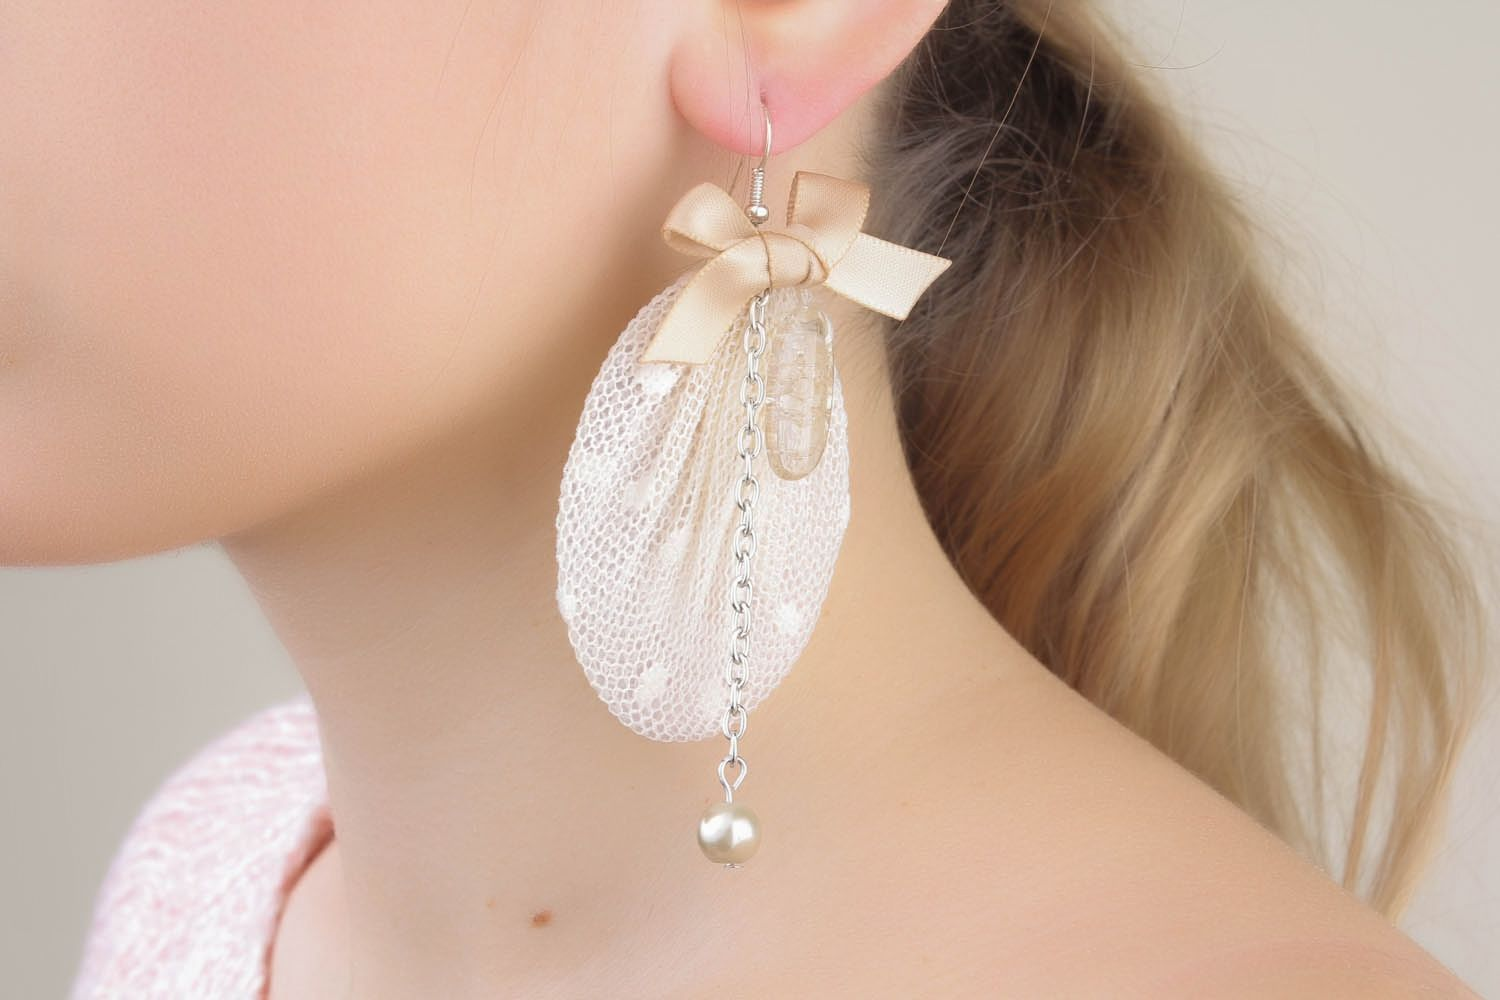 Earrings with lace and bows photo 1